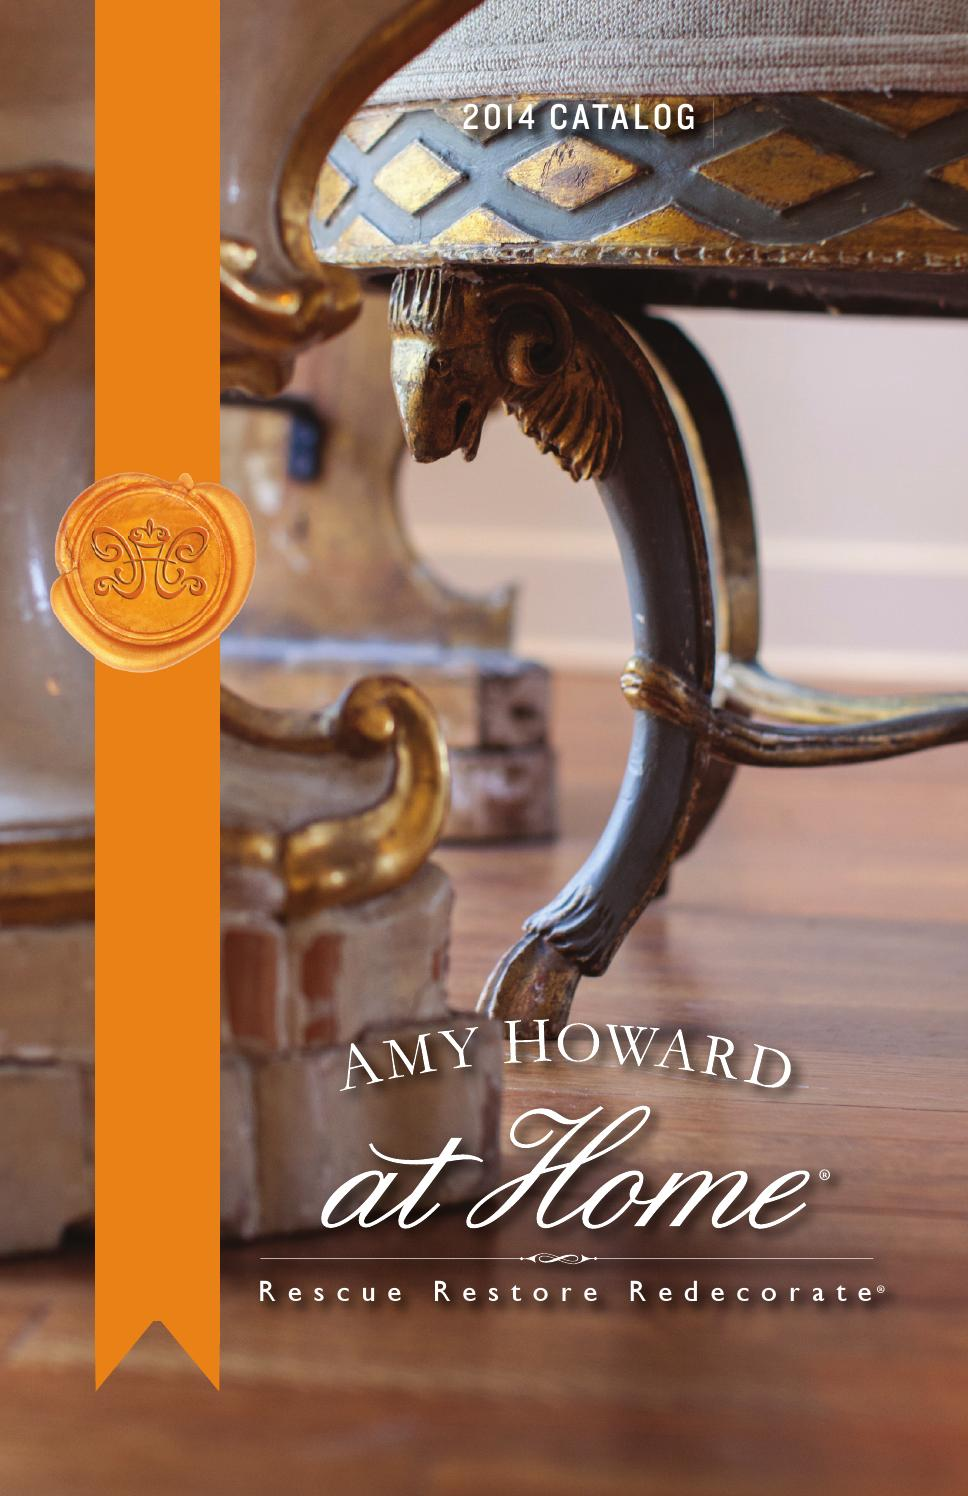 amy howard at home 2014 brochure by amy howard at home issuu